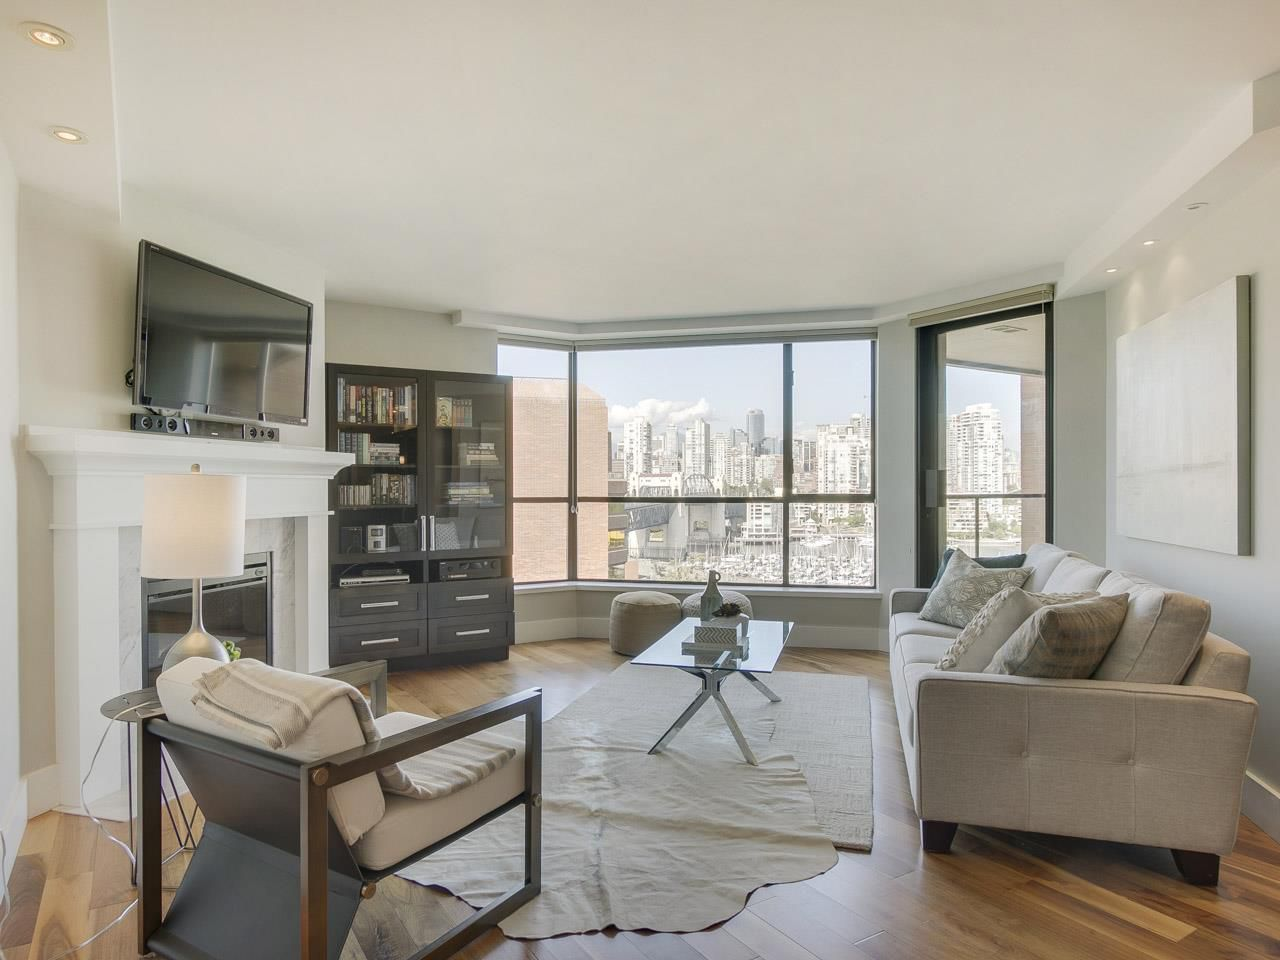 """Main Photo: 1005 1450 PENNYFARTHING Drive in Vancouver: False Creek Condo for sale in """"Harbour Cove Phase One"""" (Vancouver West)  : MLS®# R2197215"""